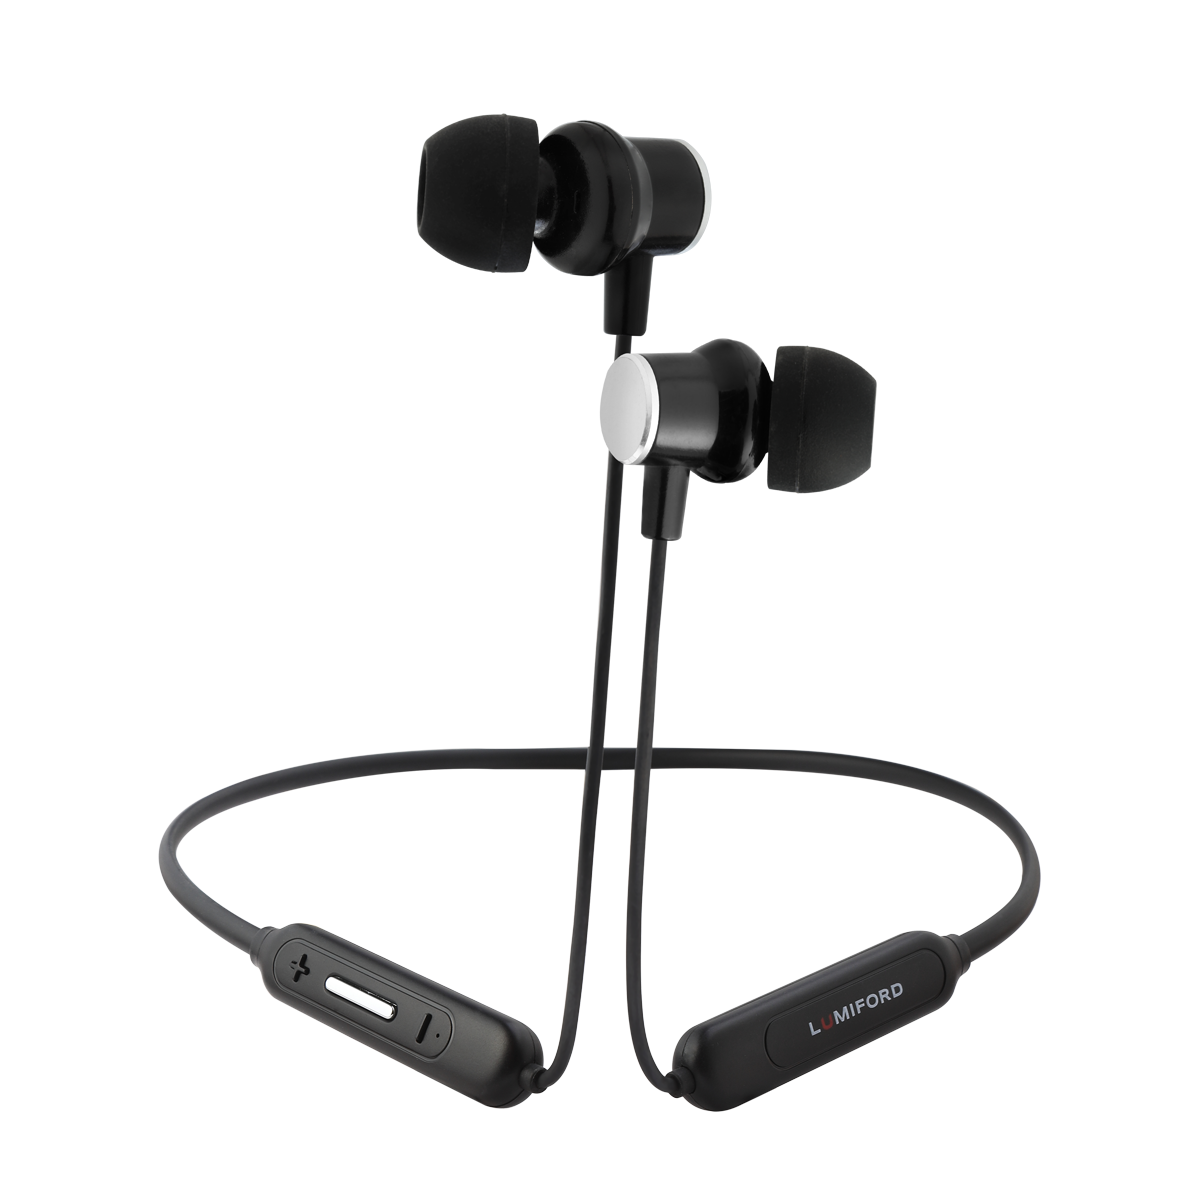 LUMIFORD XP70 in-Ear Bluetooth Earphones with Smart Magnetic Control